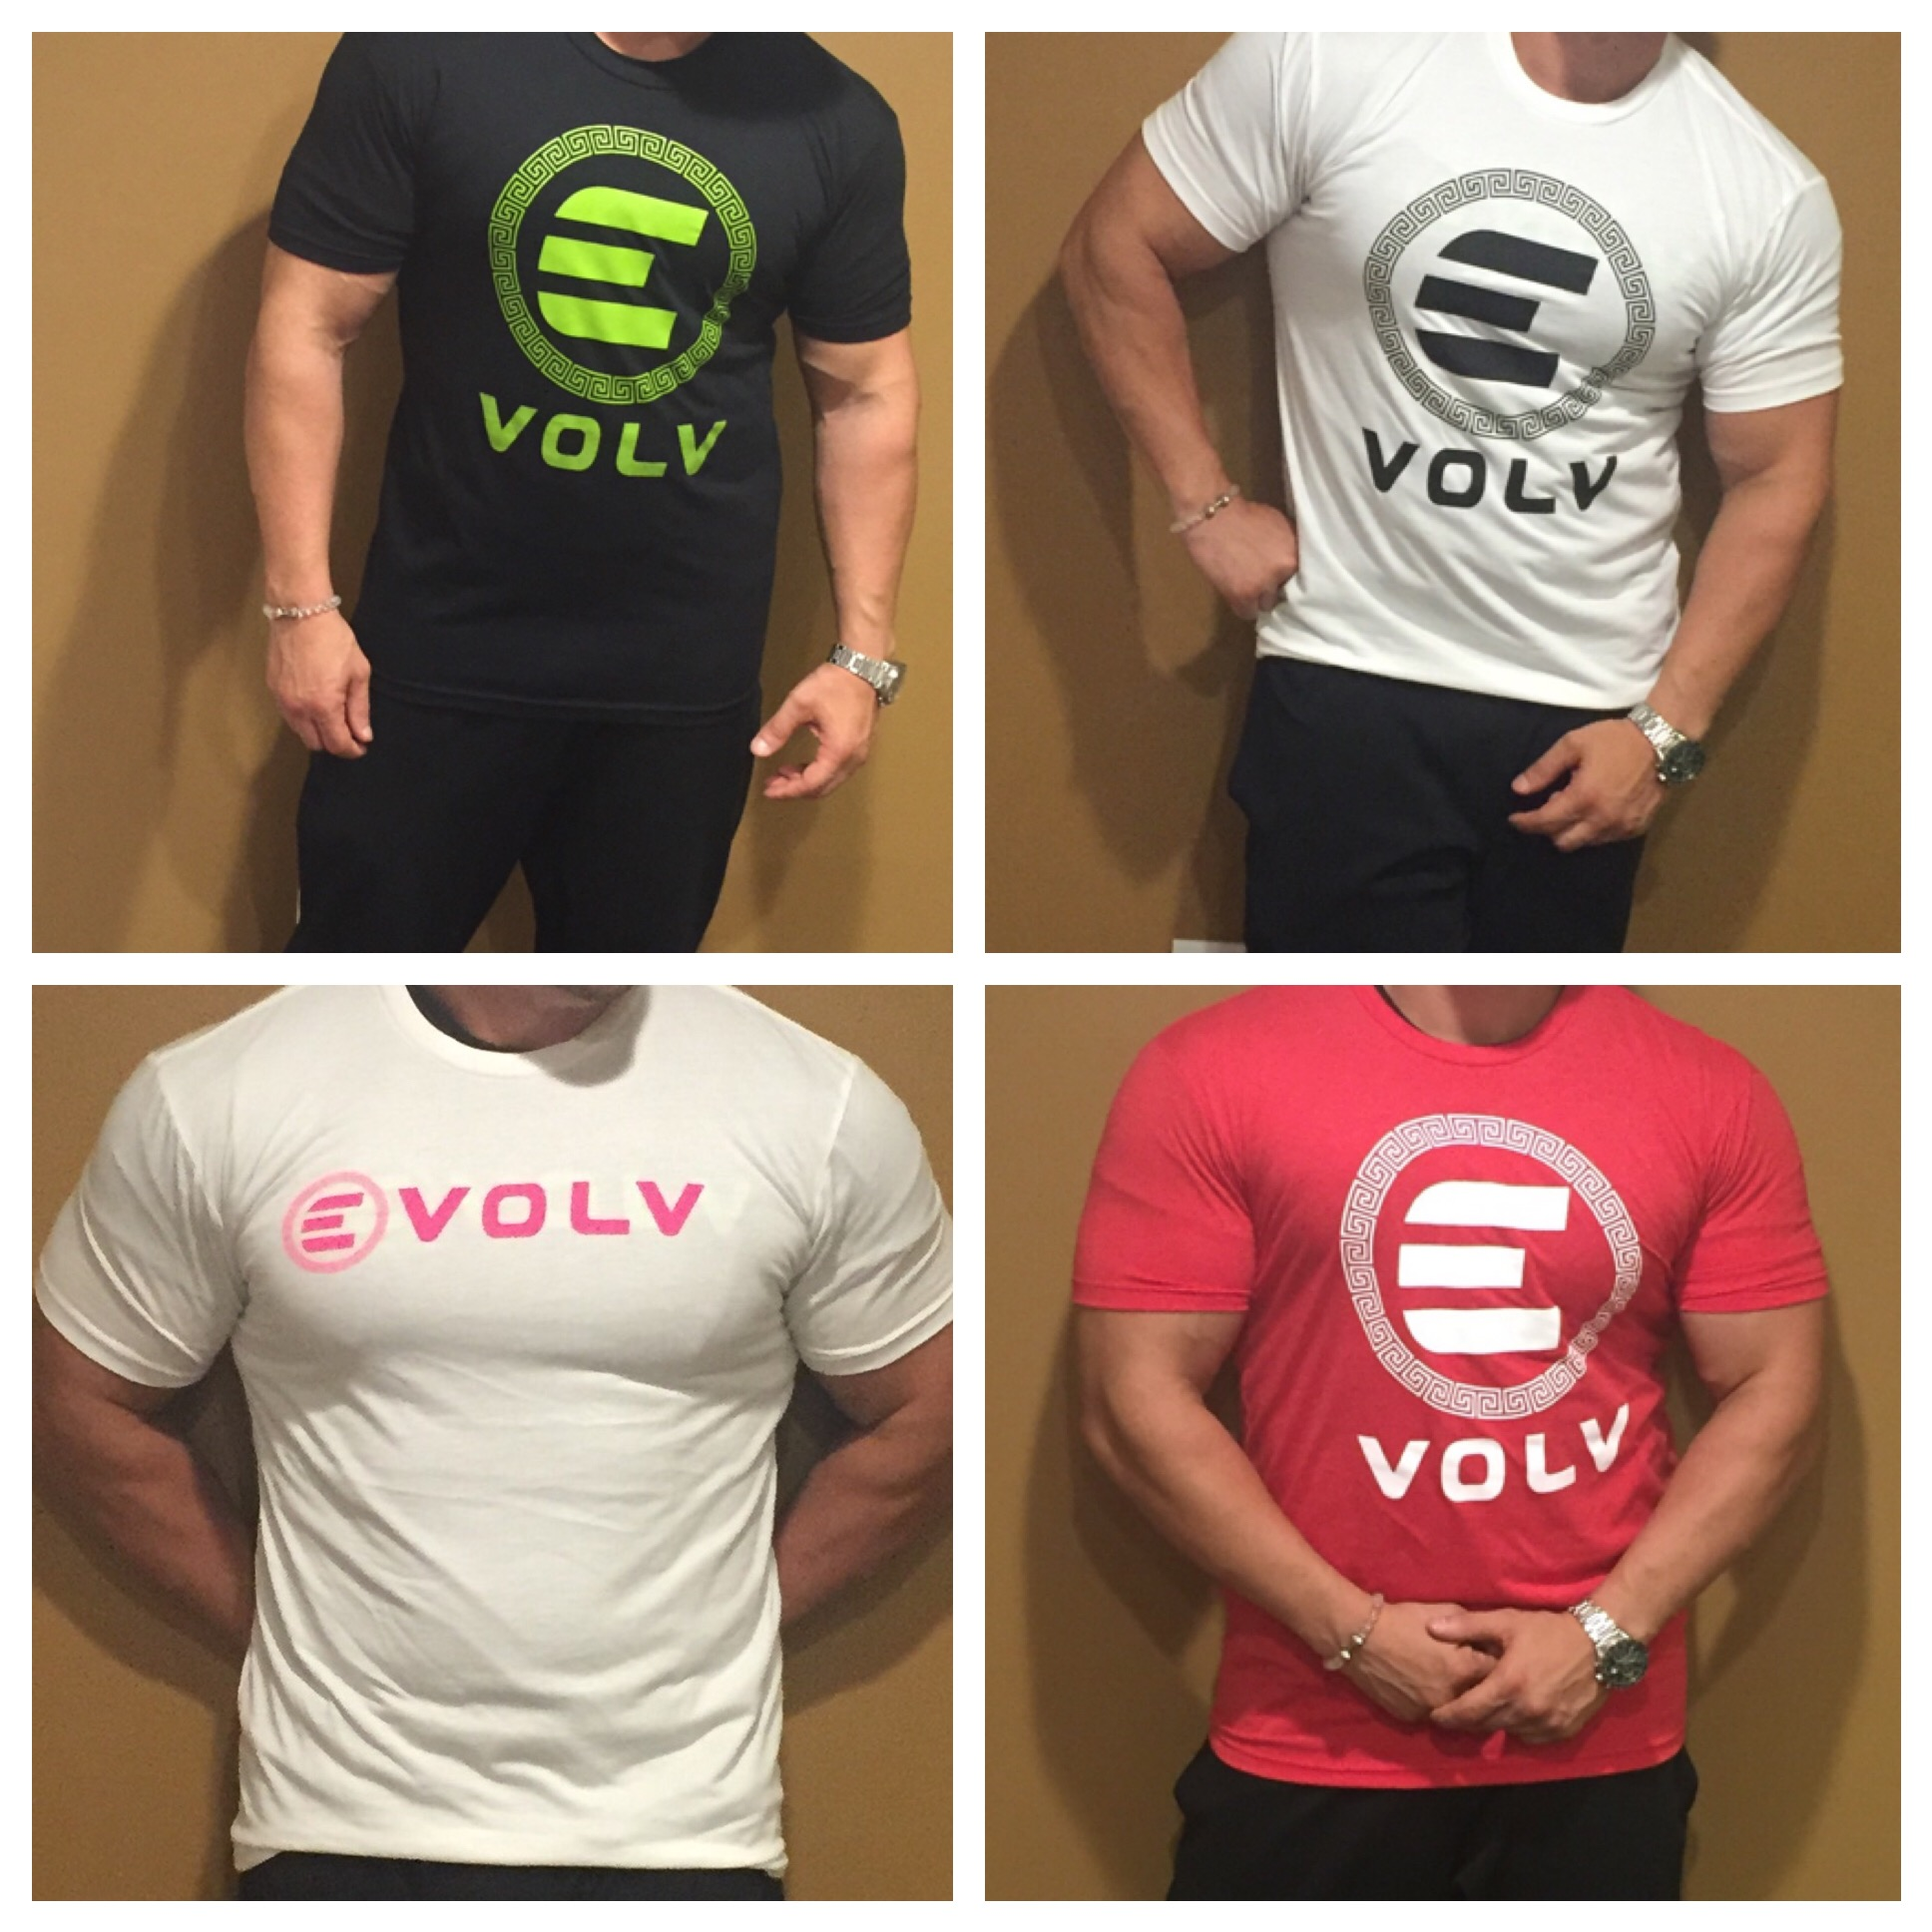 Men's Evolv T-shirts